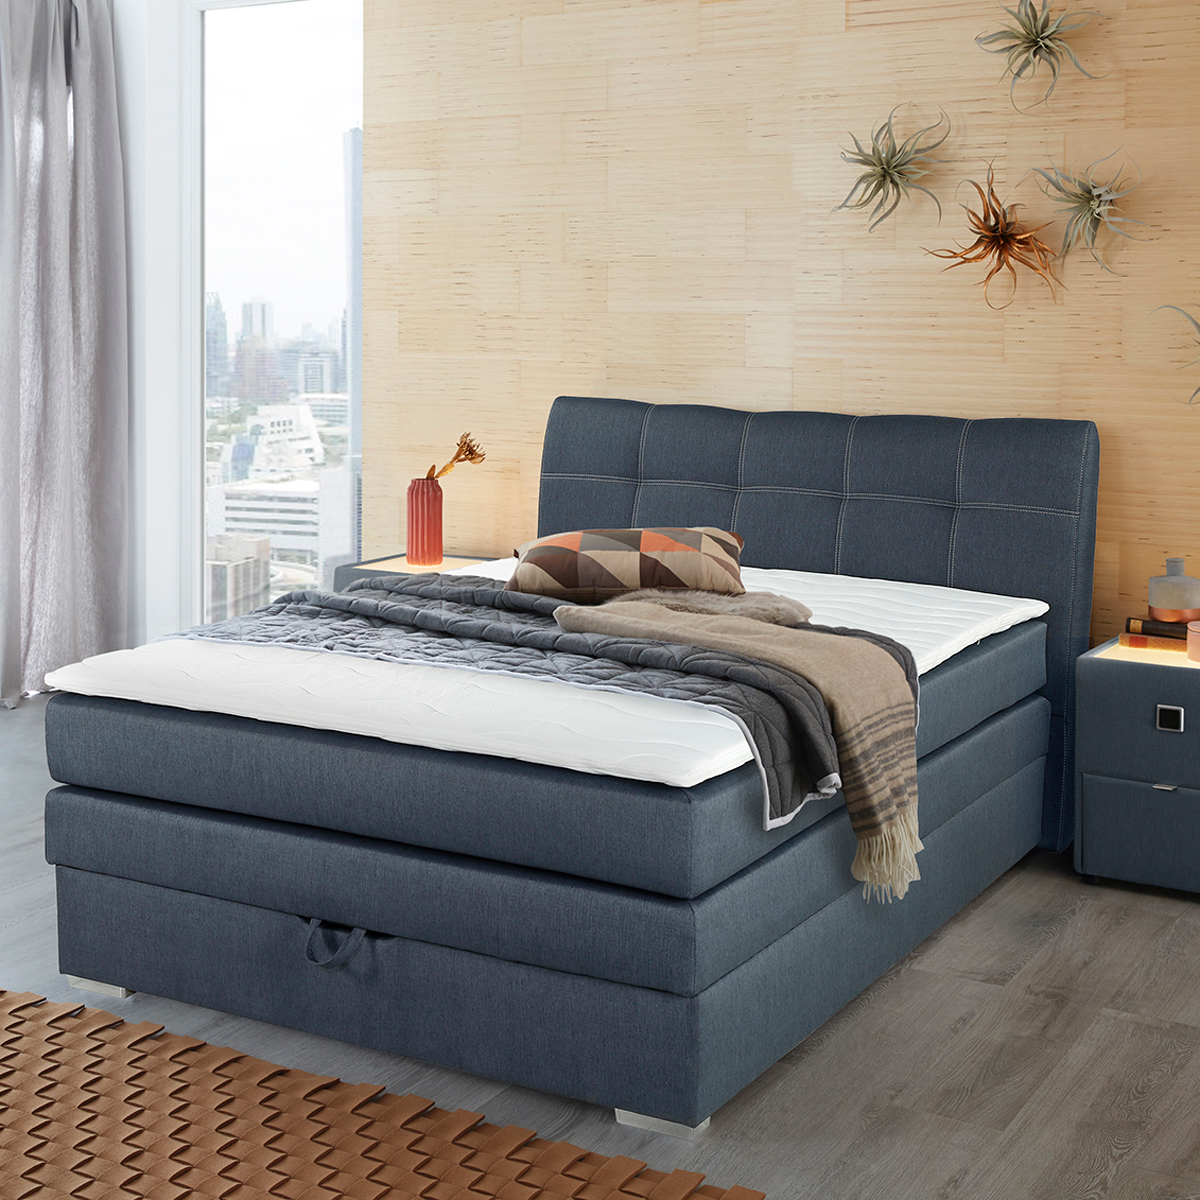 boxspringbett amelie 140 in graublau mit bettkasten topper bett bonell federkern eur 598 95. Black Bedroom Furniture Sets. Home Design Ideas